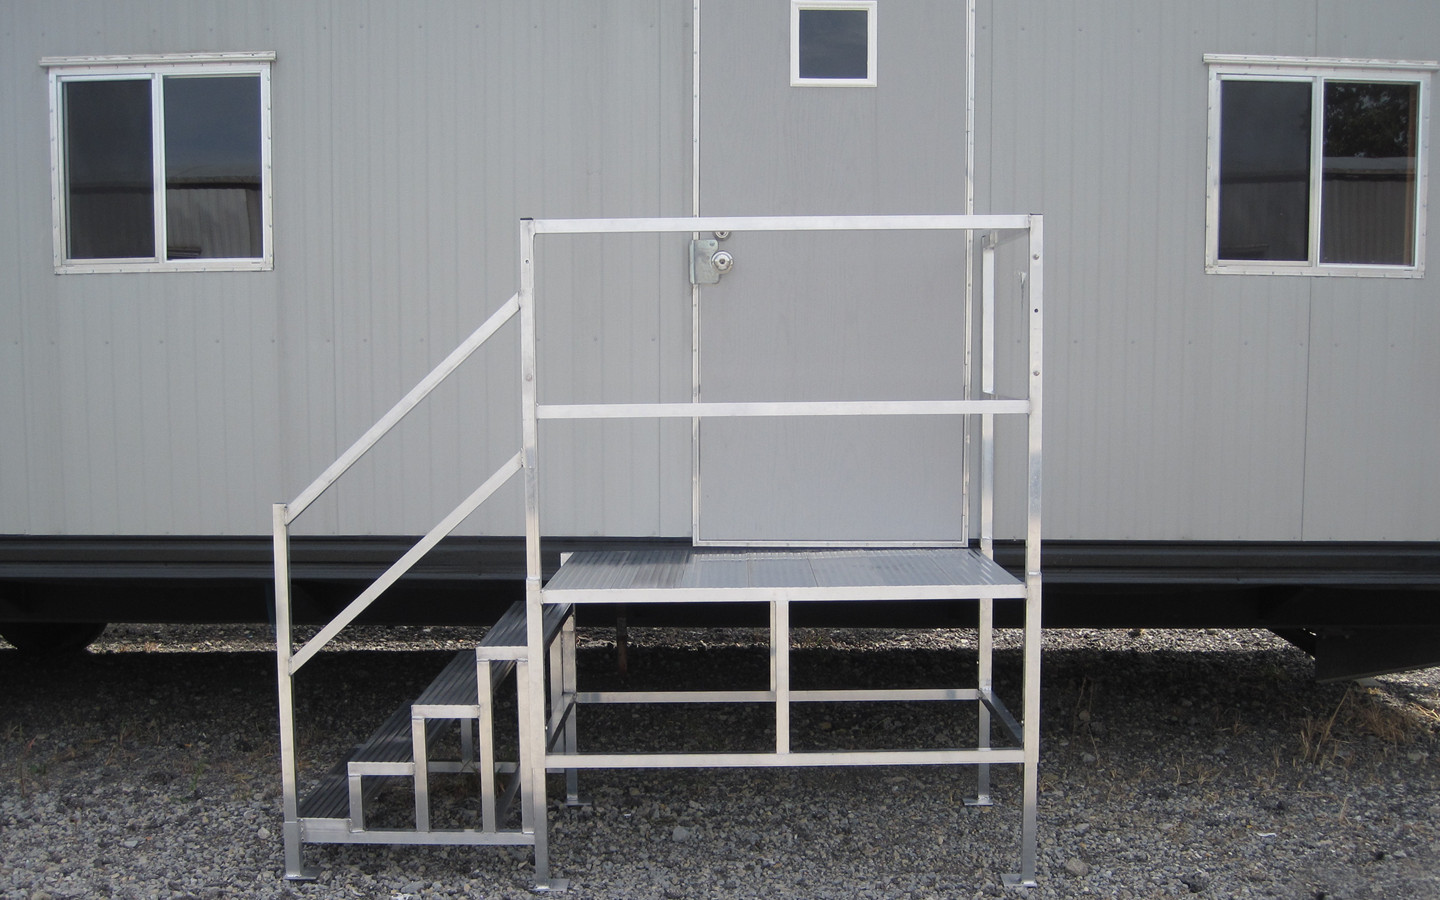 Best ideas about The Staircase Trailer . Save or Pin Portable Aluminum Stairs for Mobile fices Upside Now.